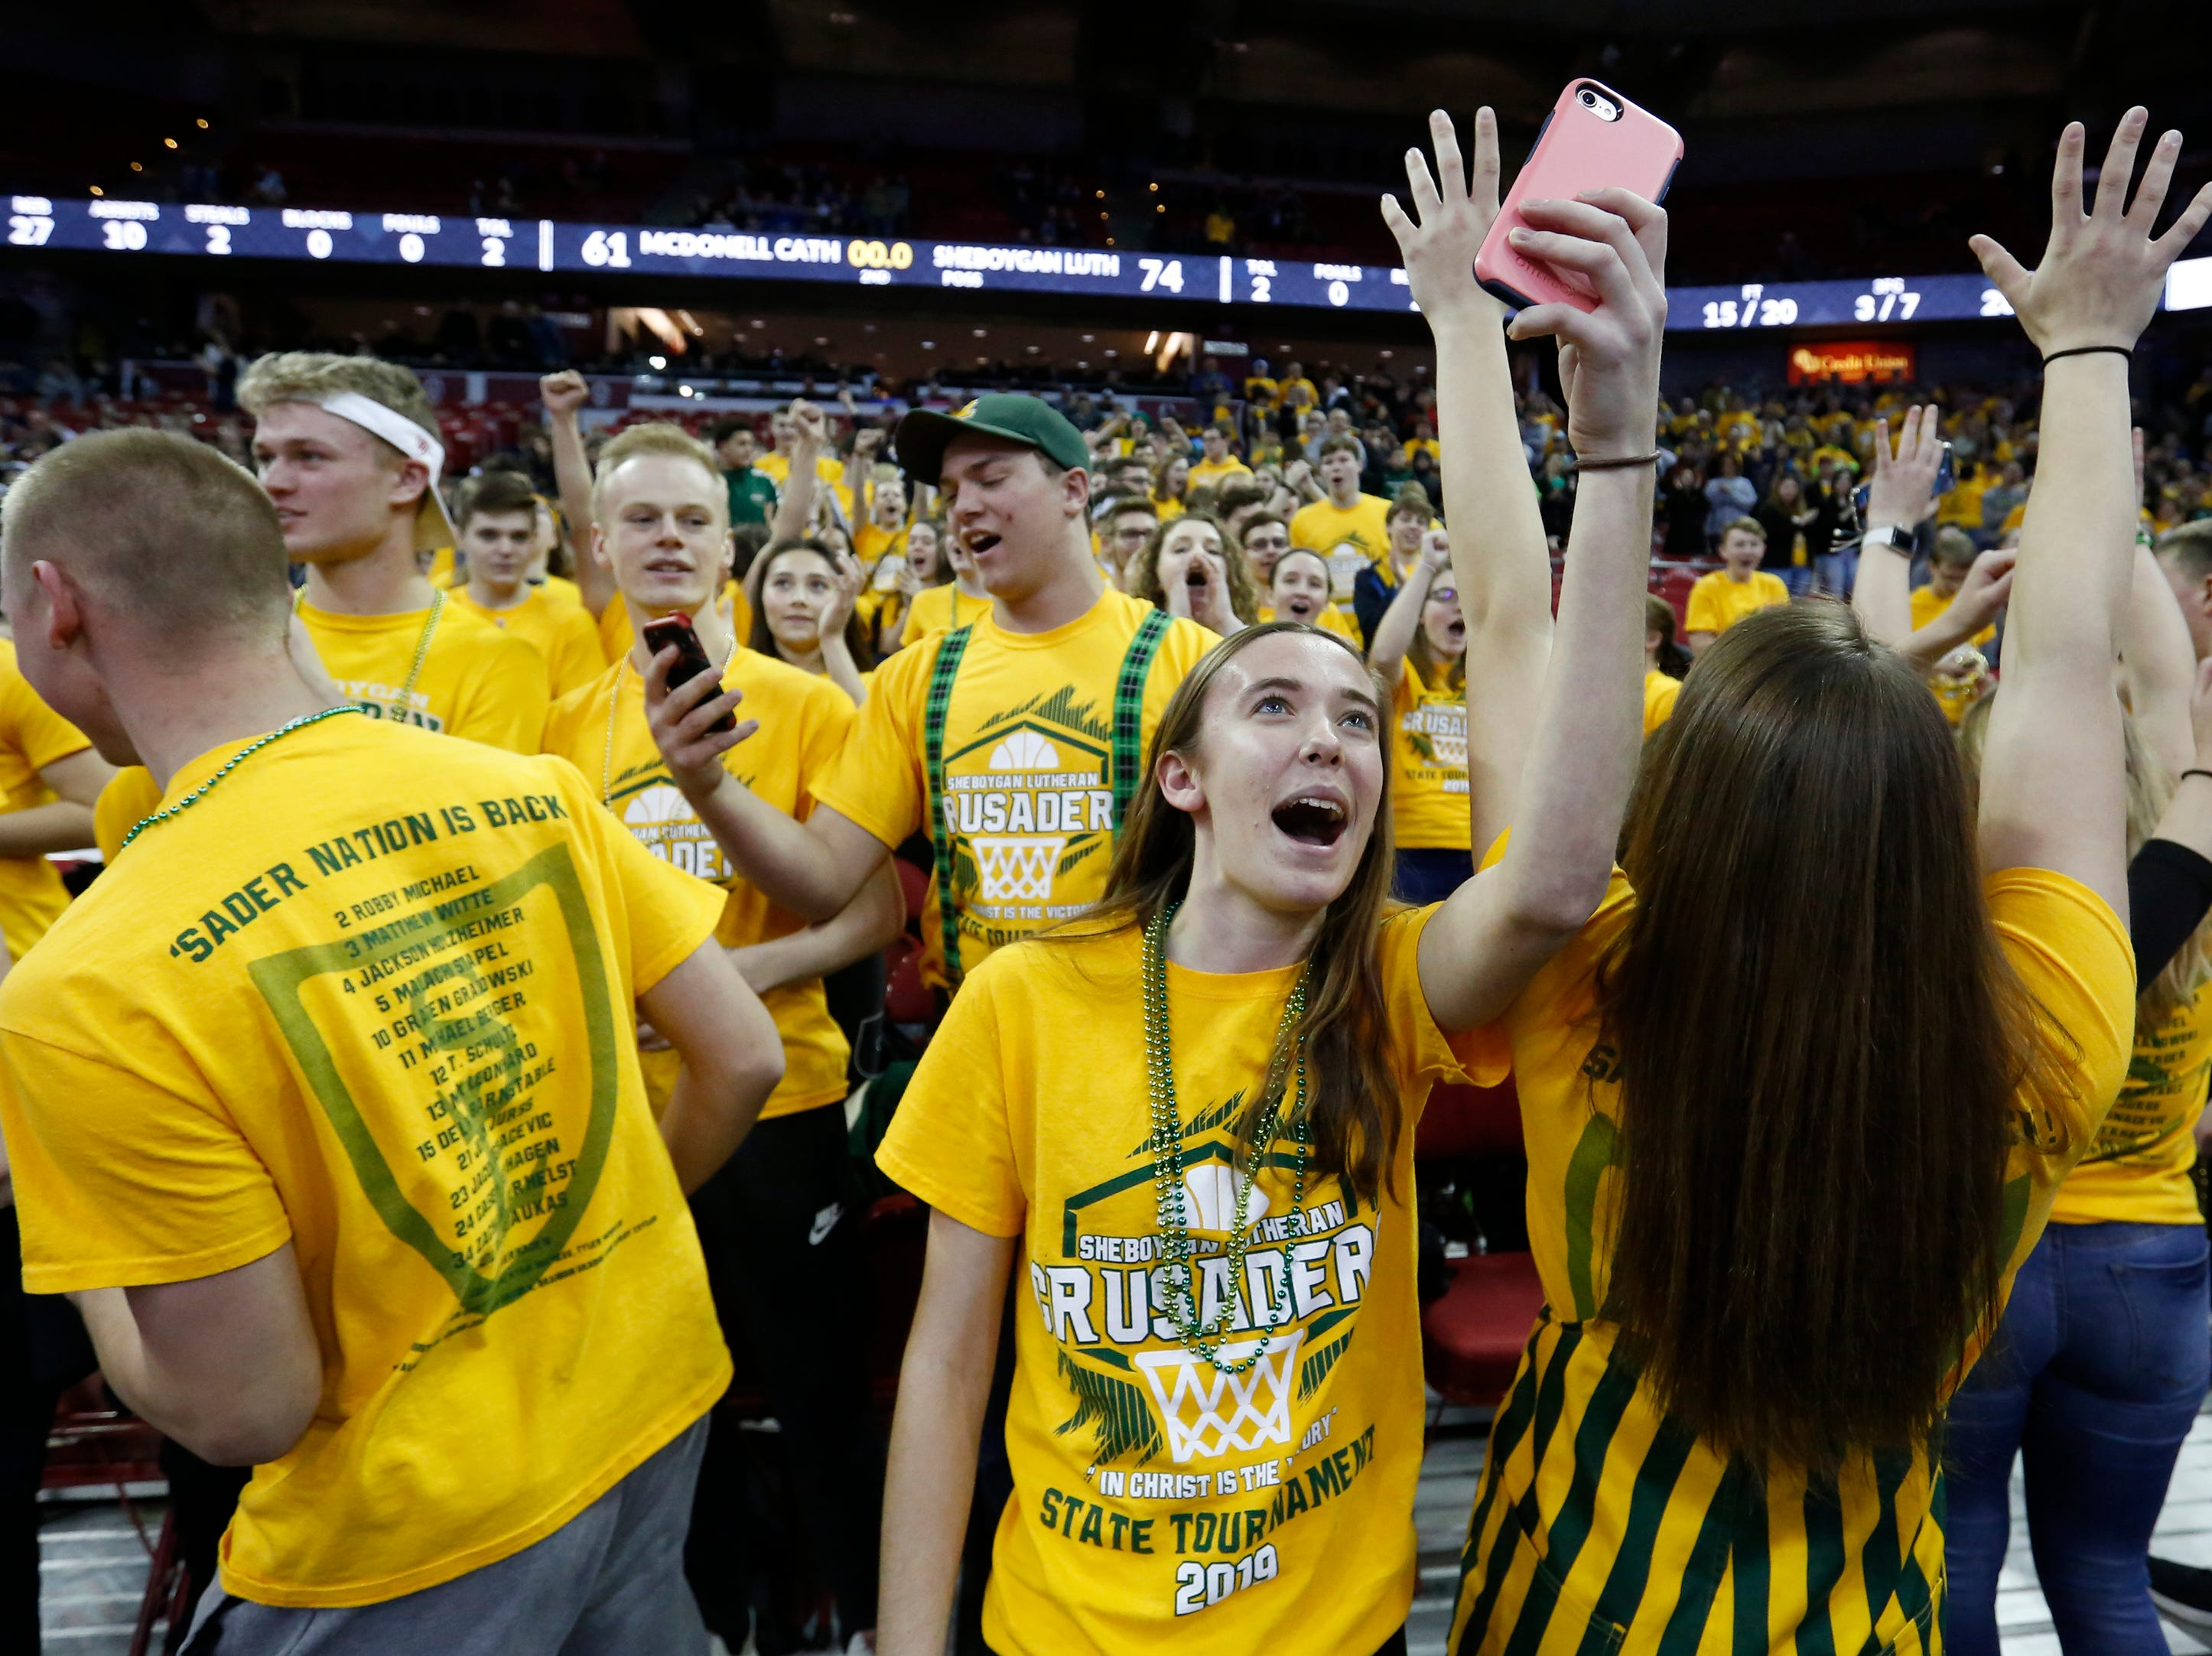 Sheboygan Area Lutheran High School's student section reacts after the Crusaders defeat McDonell Central Catholic High School in their WIAA Division 5 boys basketball state semifinal at the Kohl Center Friday, March 15, 2019, in Madison, Wis. The Crusaders defeated the Macks 74-61.